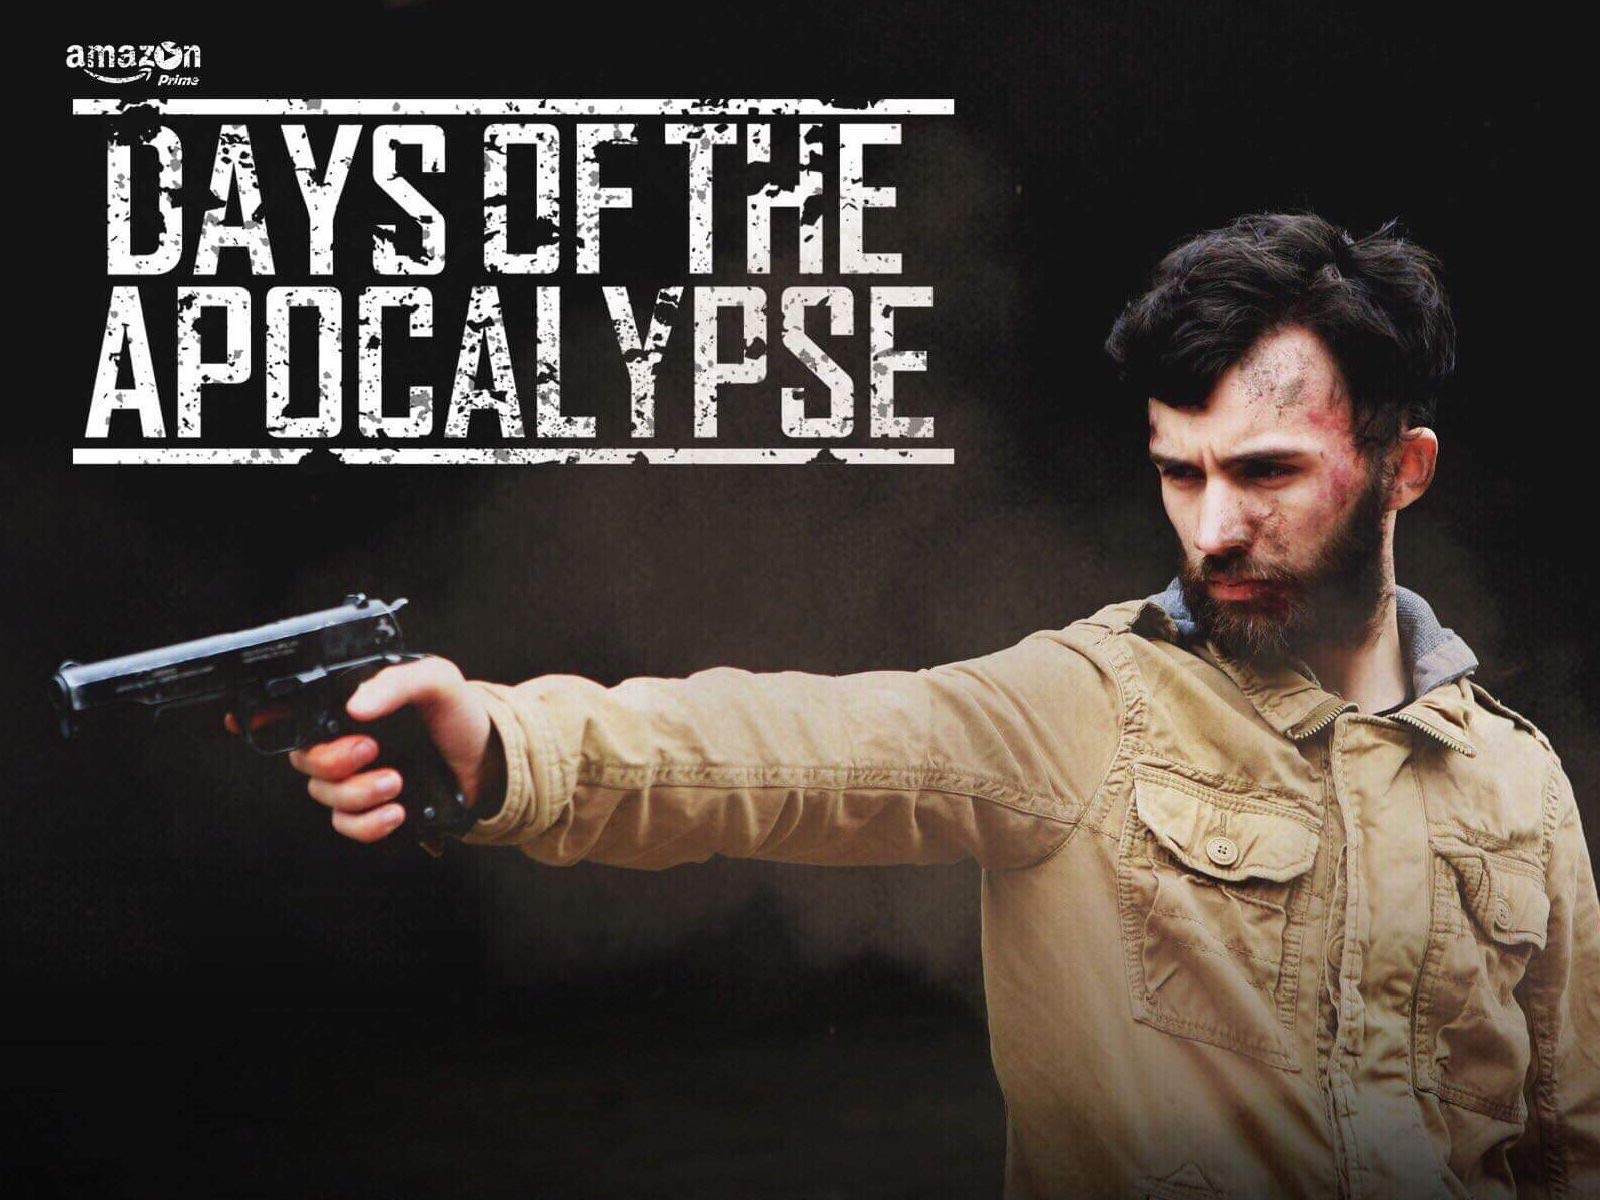 Days of the apocalypse